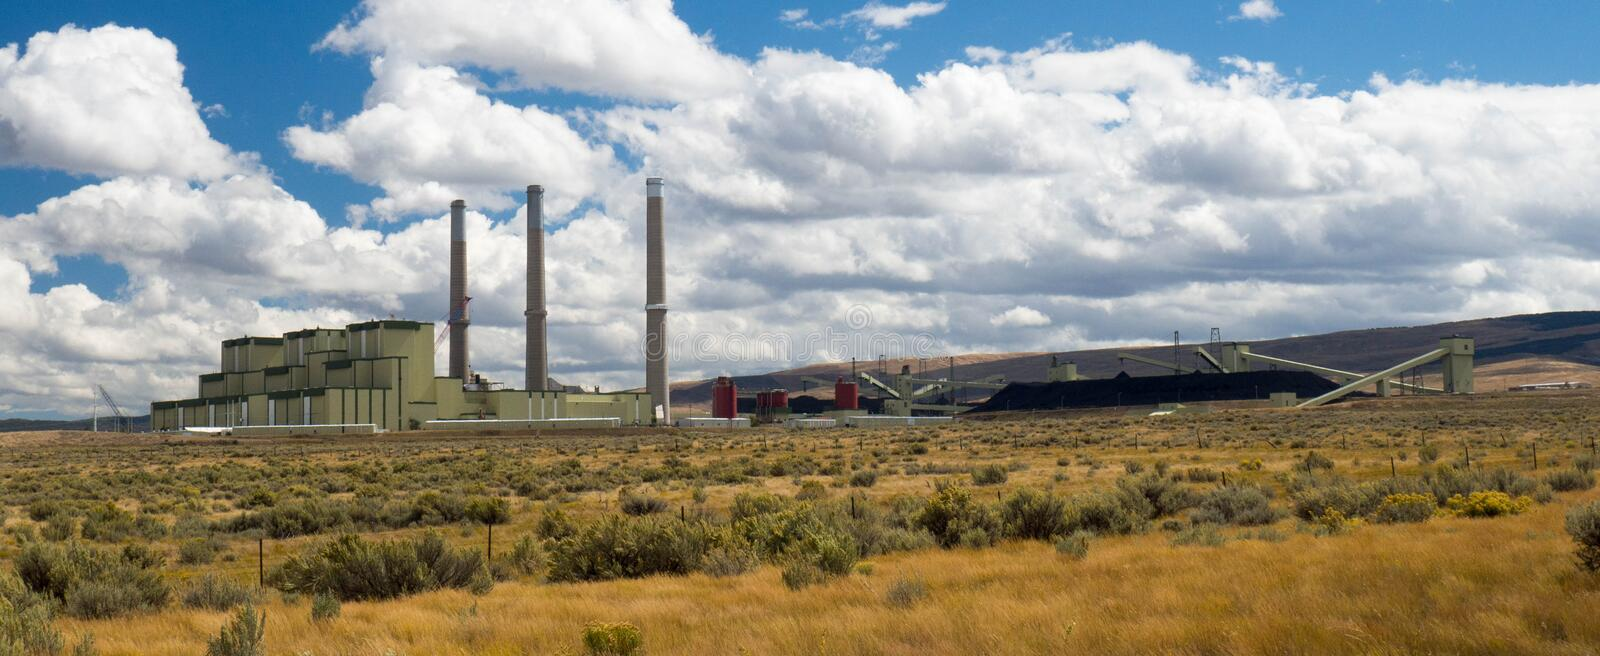 Coal Fired Power Plant with Coal Stockpiles royalty free stock photos